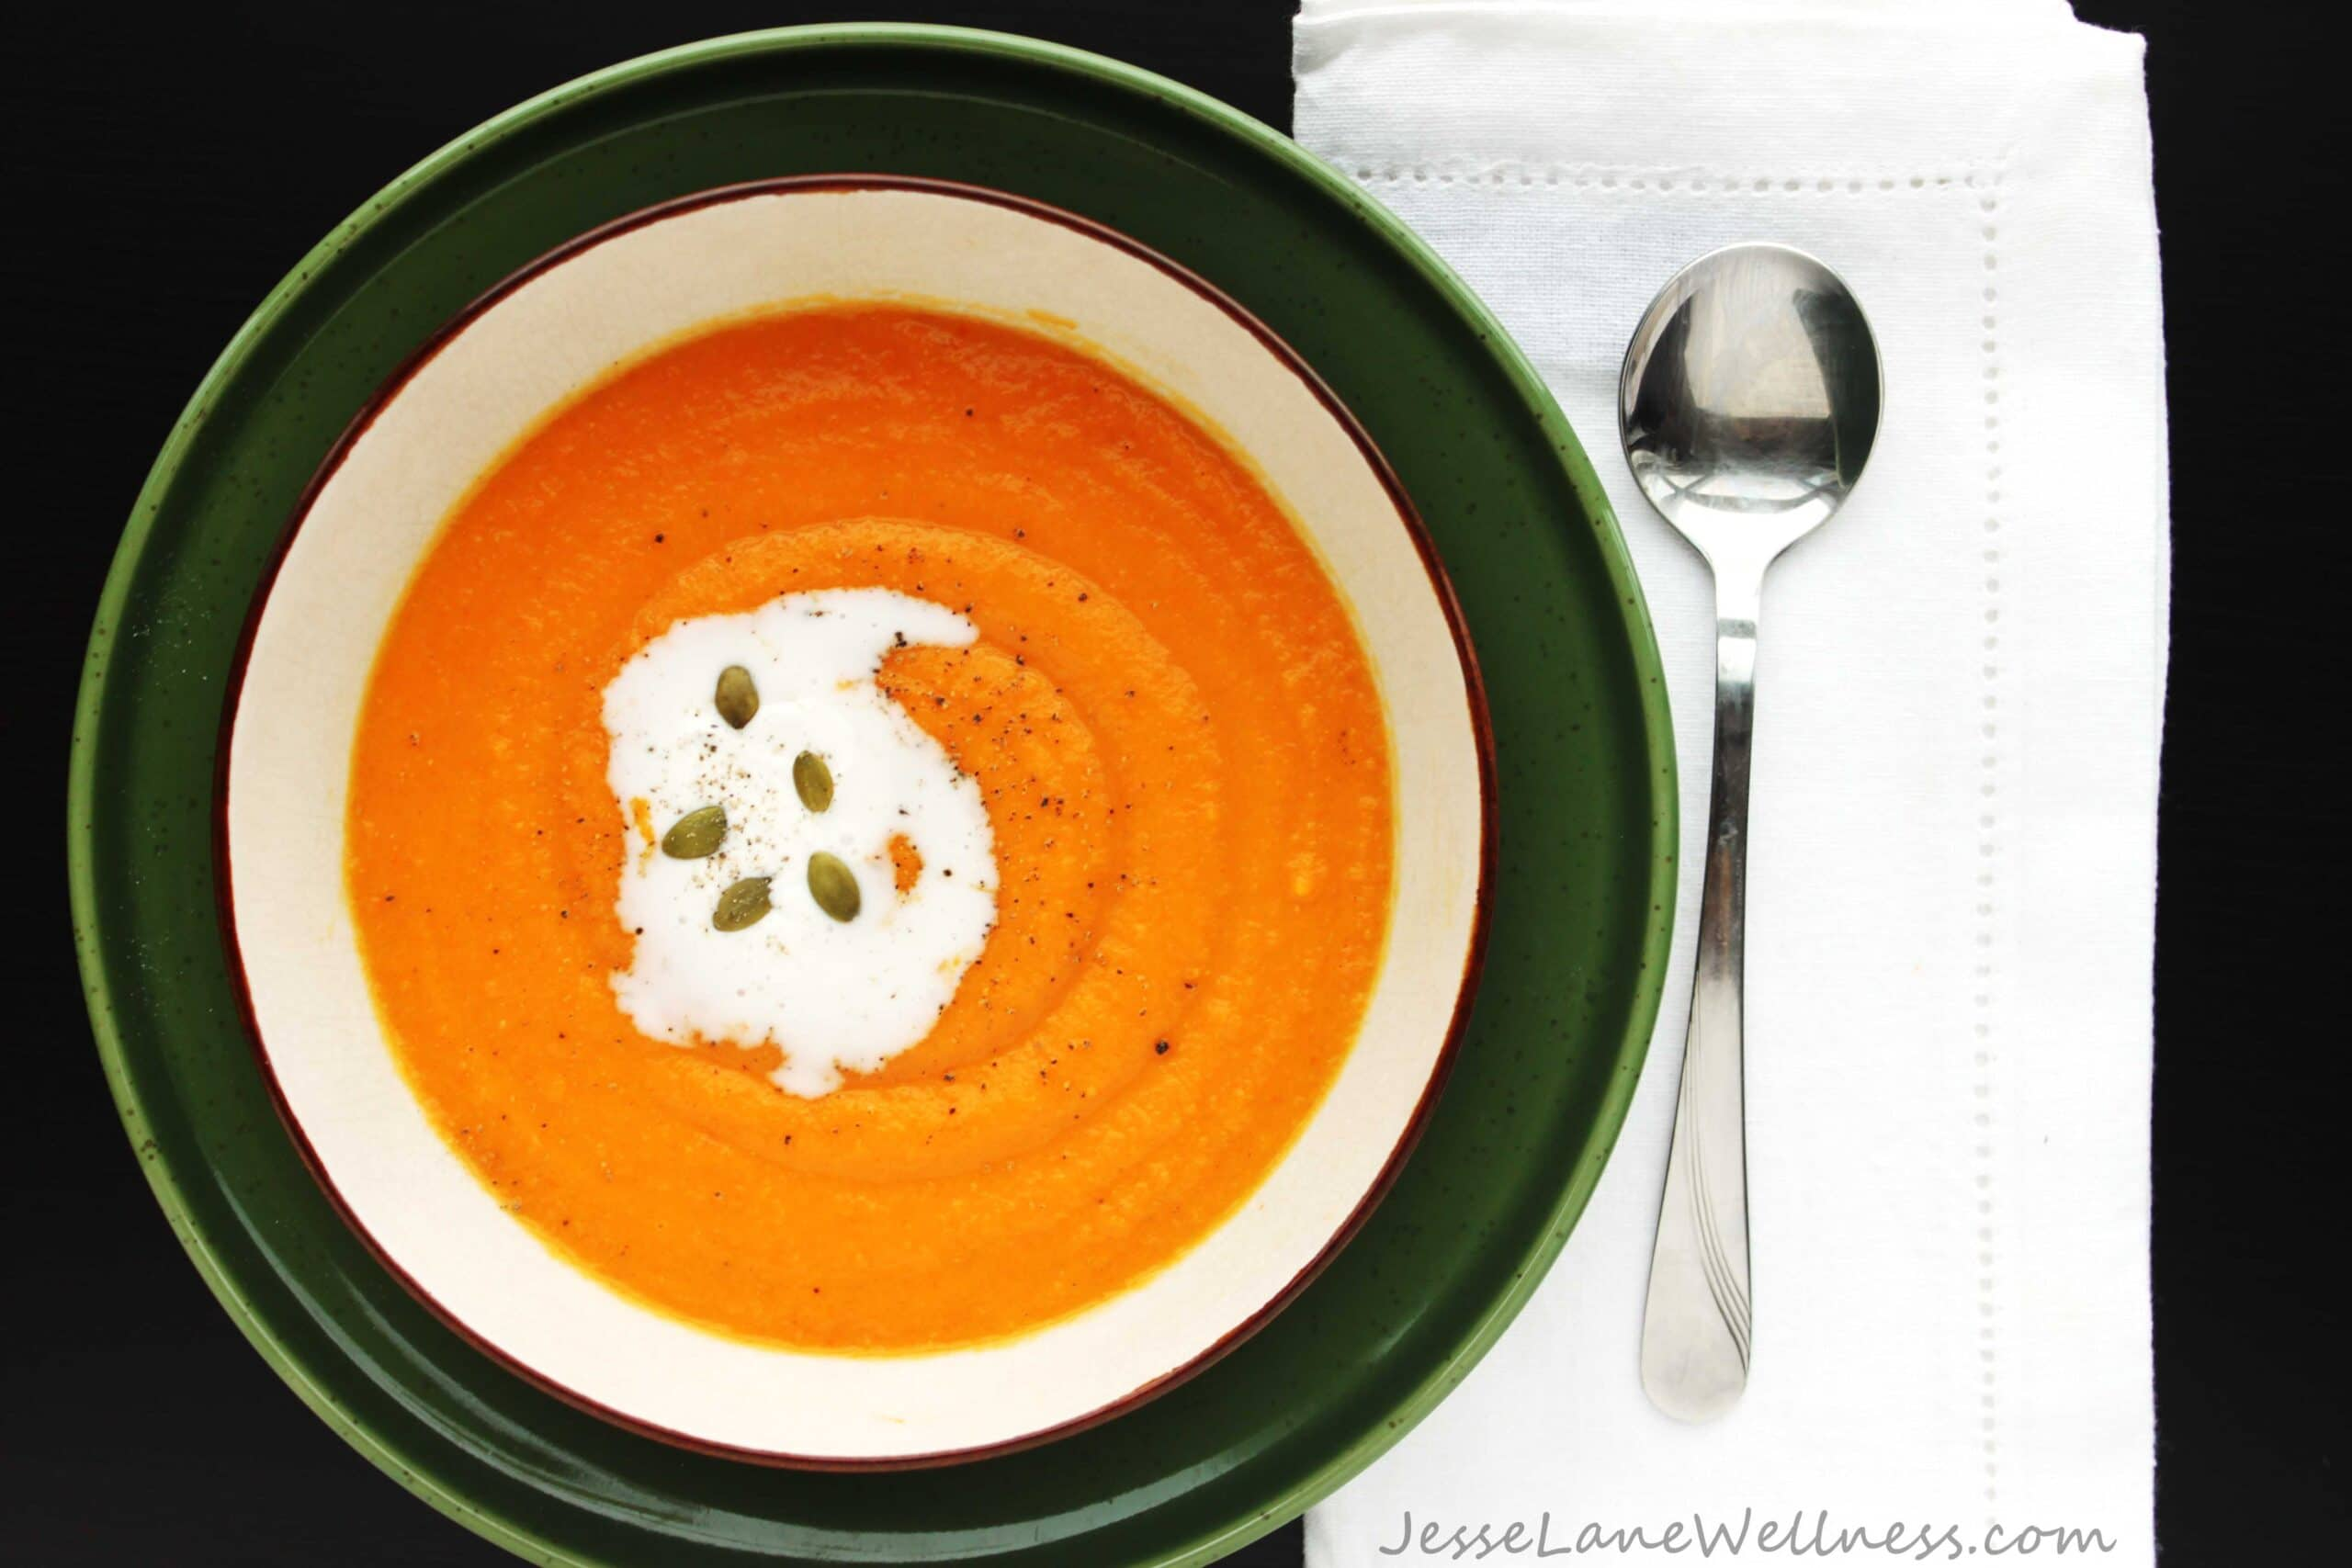 Sunshine Carrot Soup by @JesseLWellness #soup